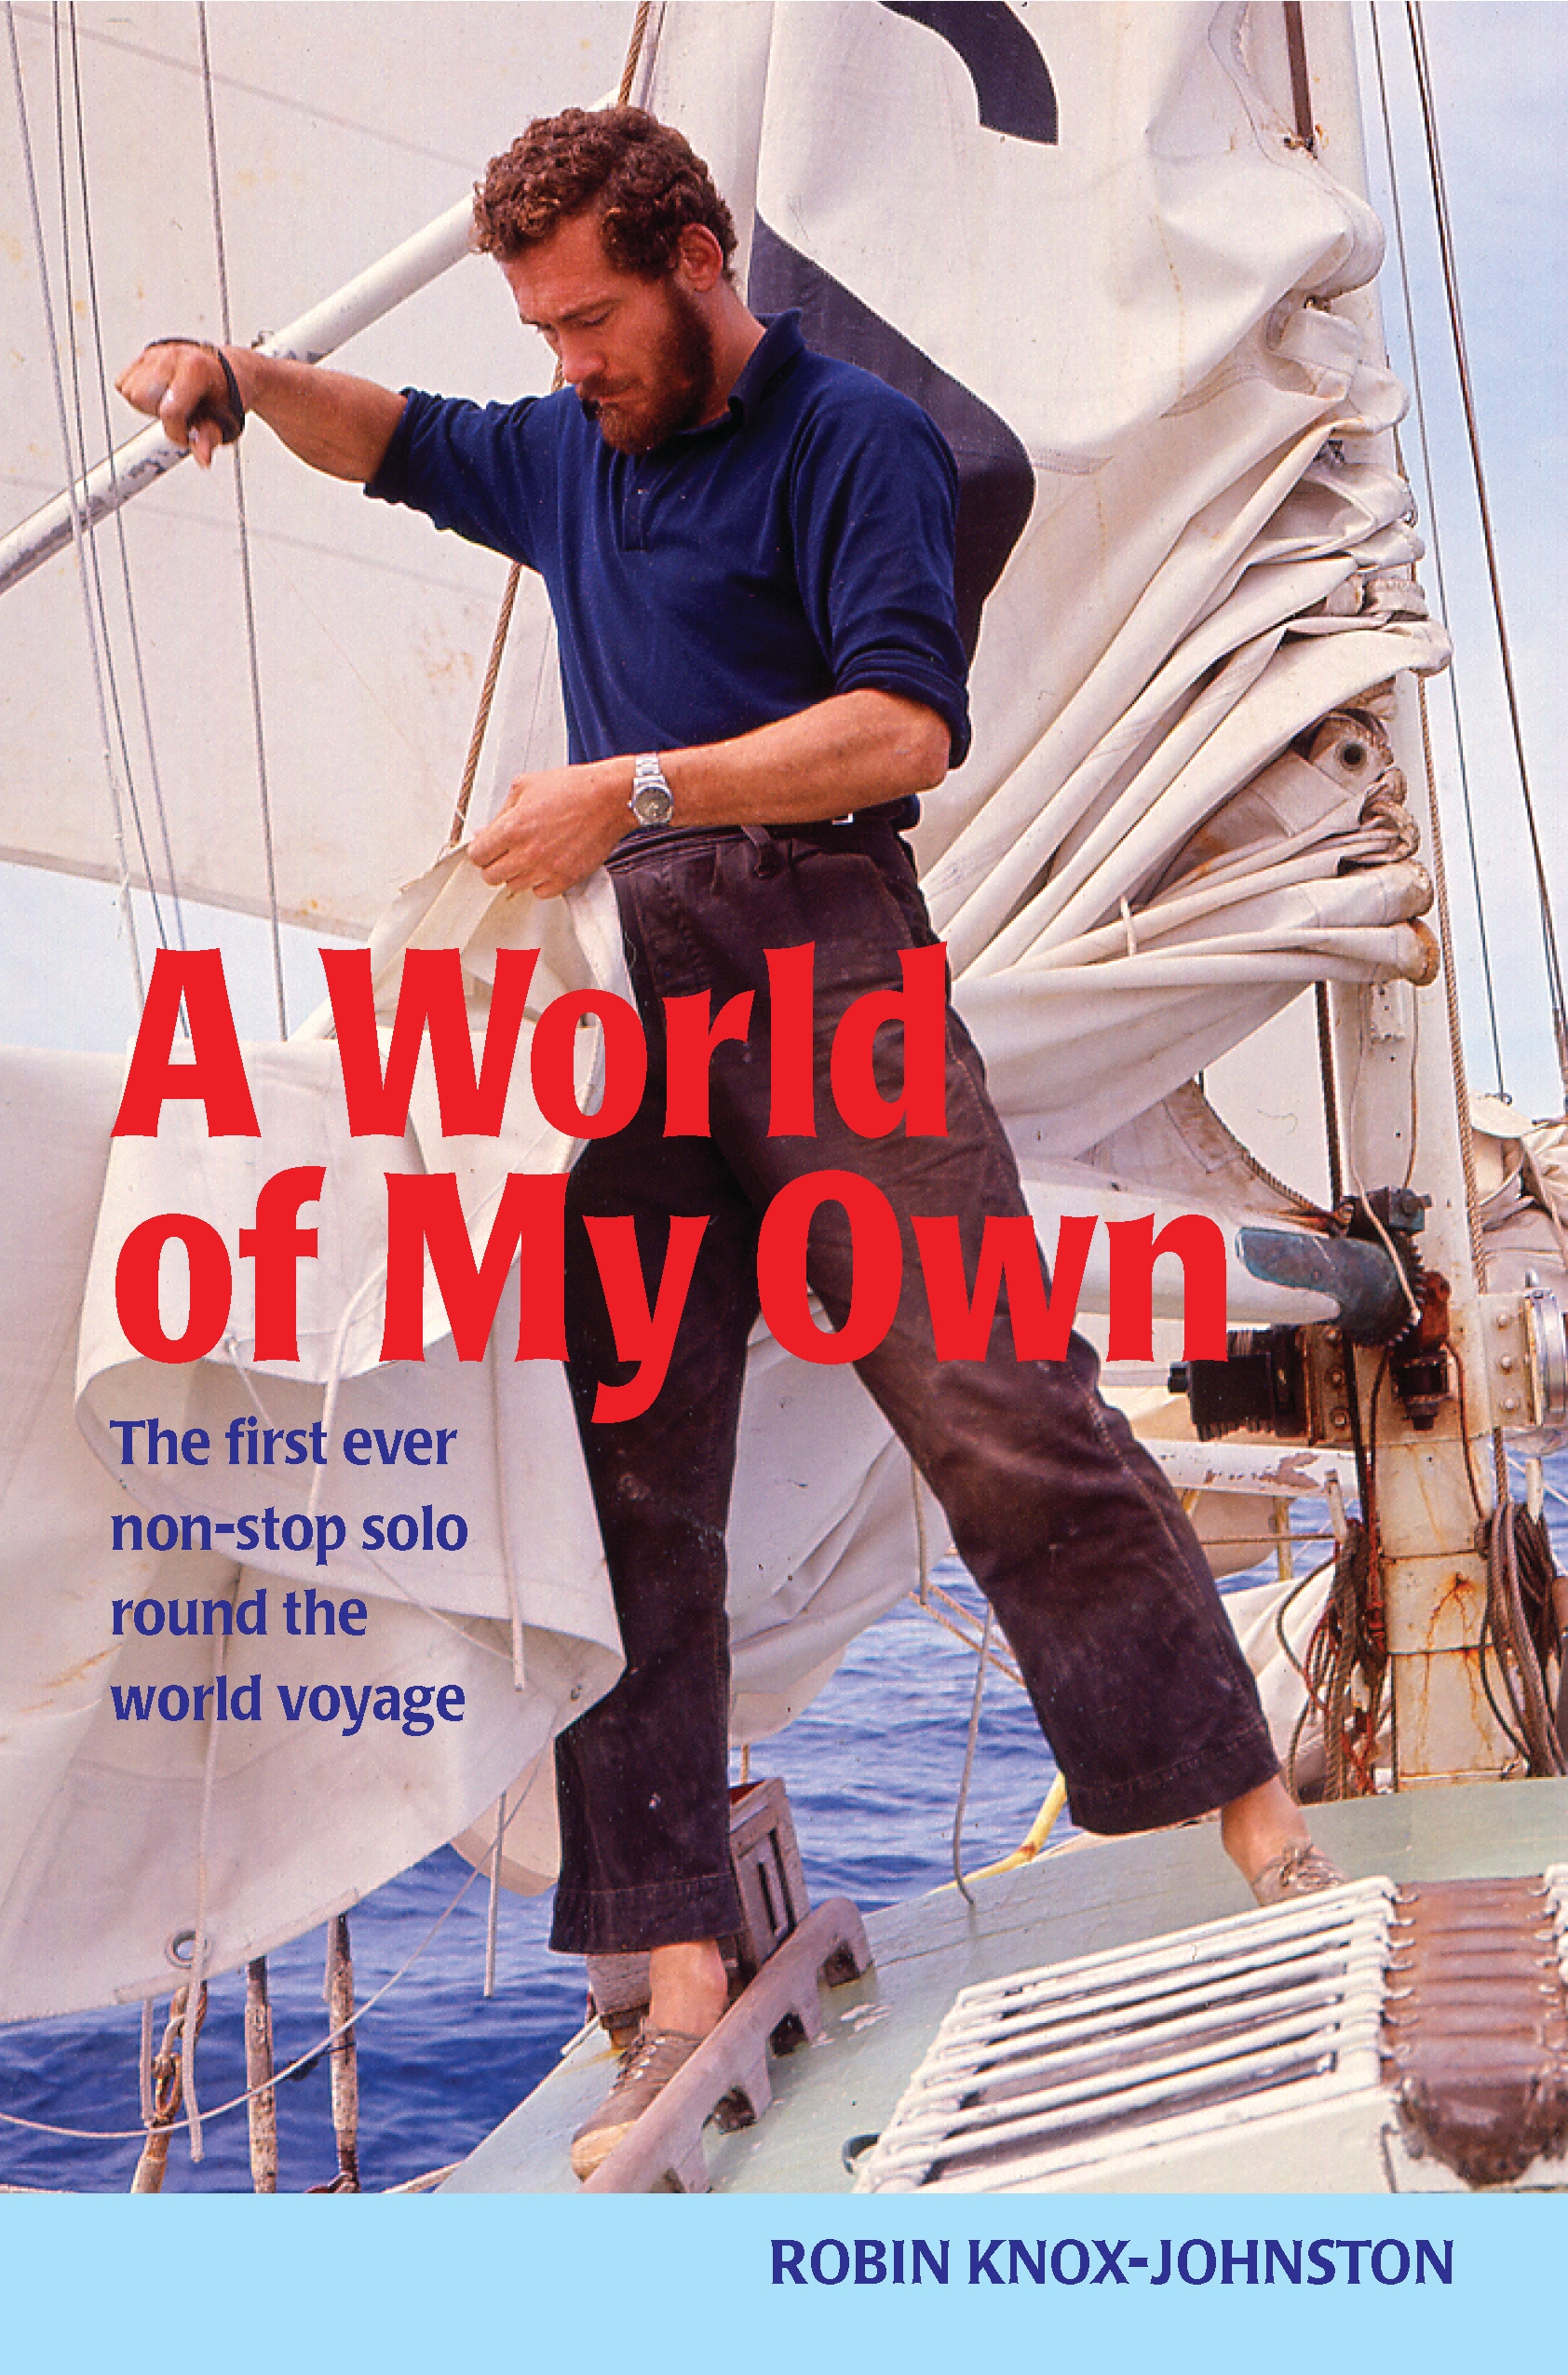 A World of My Own The First Ever Non-stop Solo Round the World Voyage